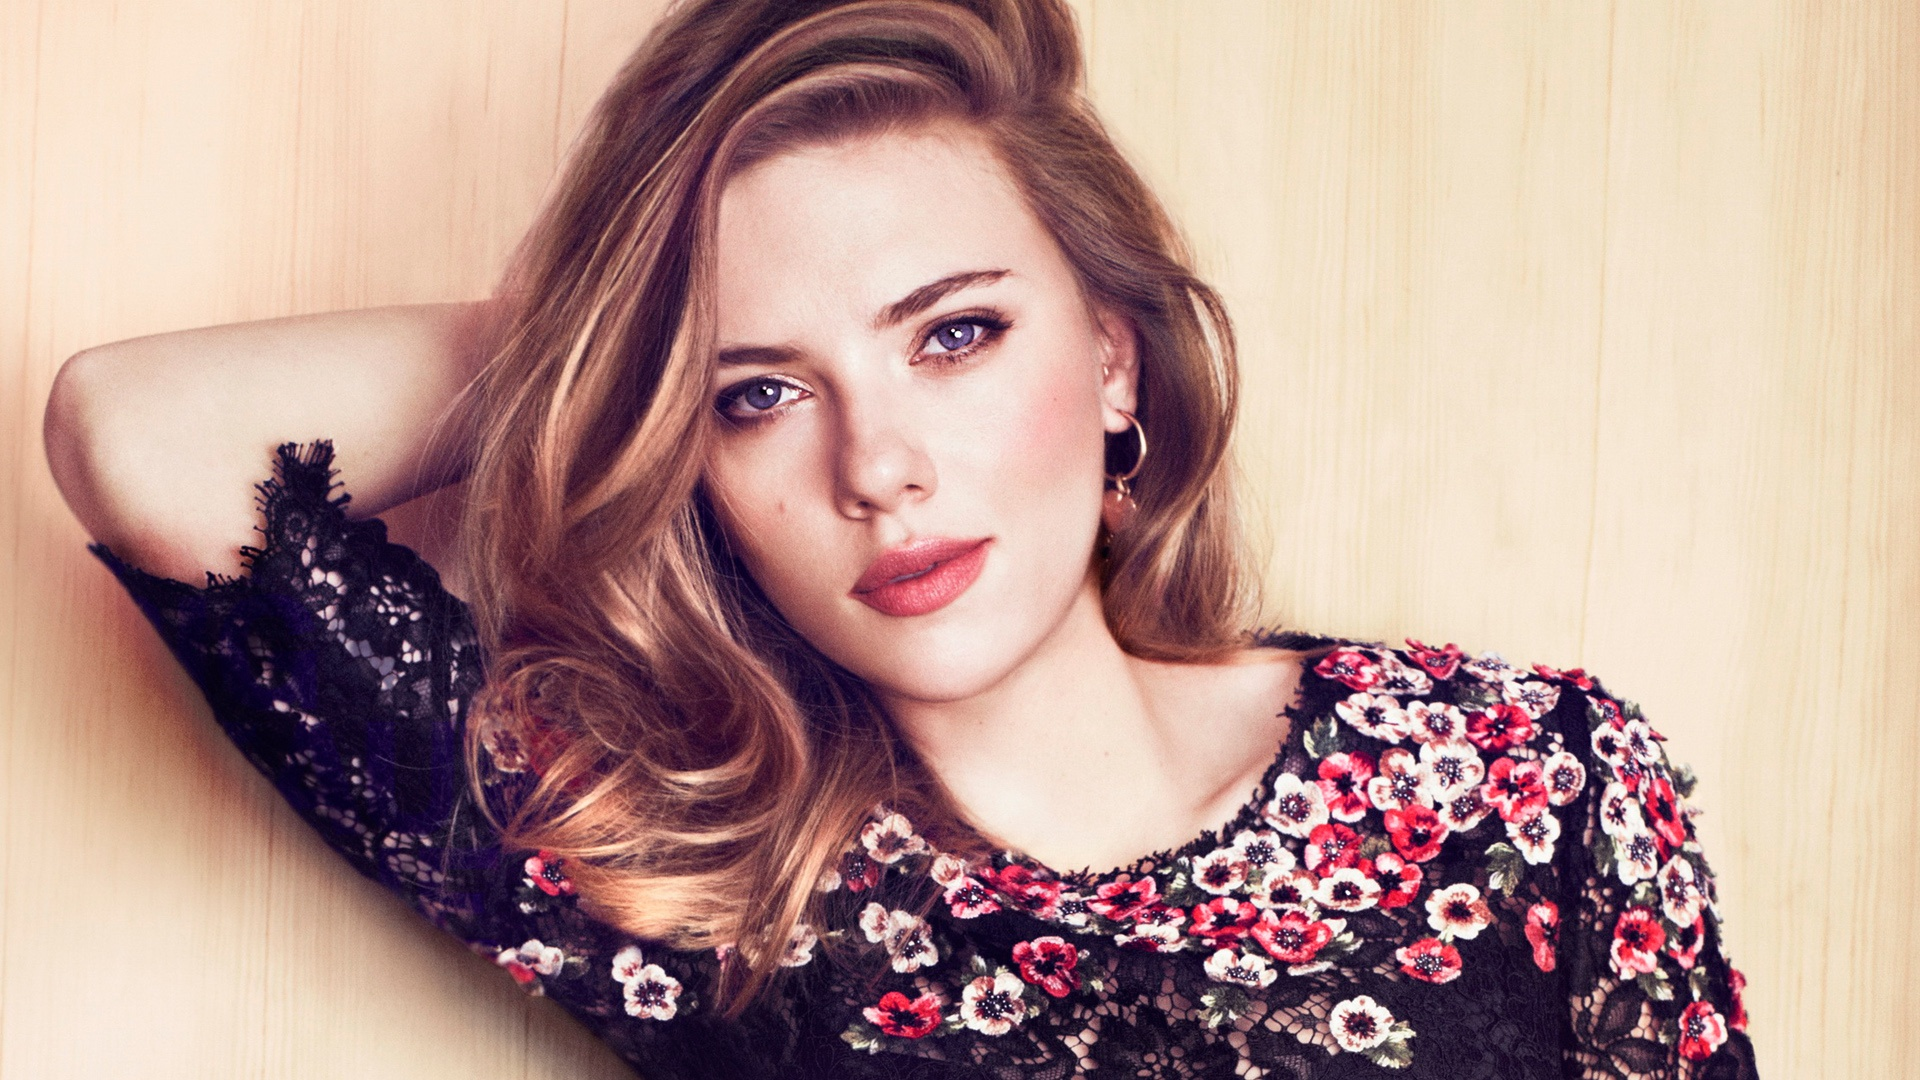 scarlett johansson wallpapers HD cute flower